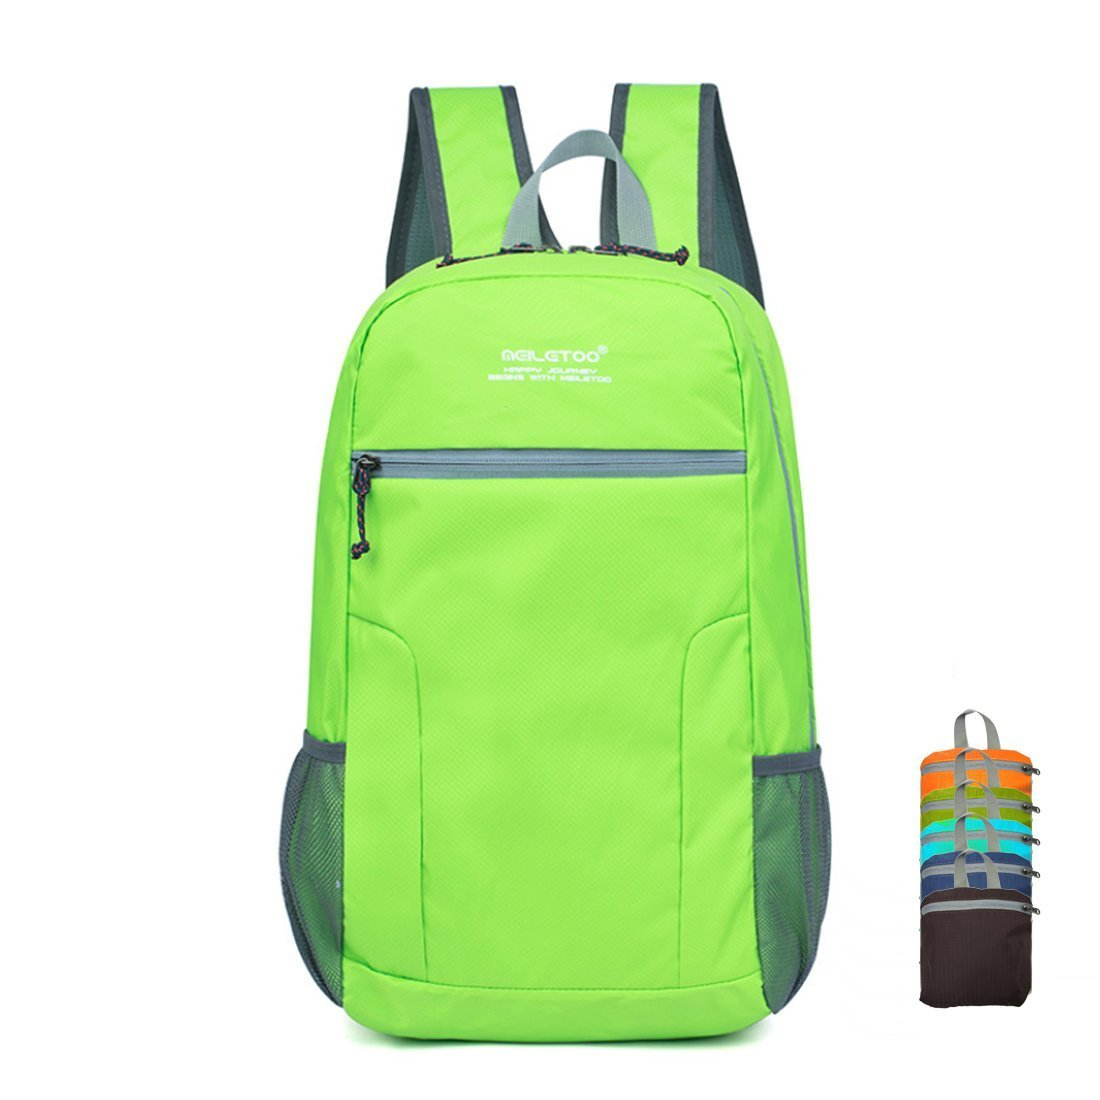 Bagspert Foldable Backpack Lightweight Travel Hiking Daypack 25L Water Resistant Nylon Day Bag Packable in Pouch